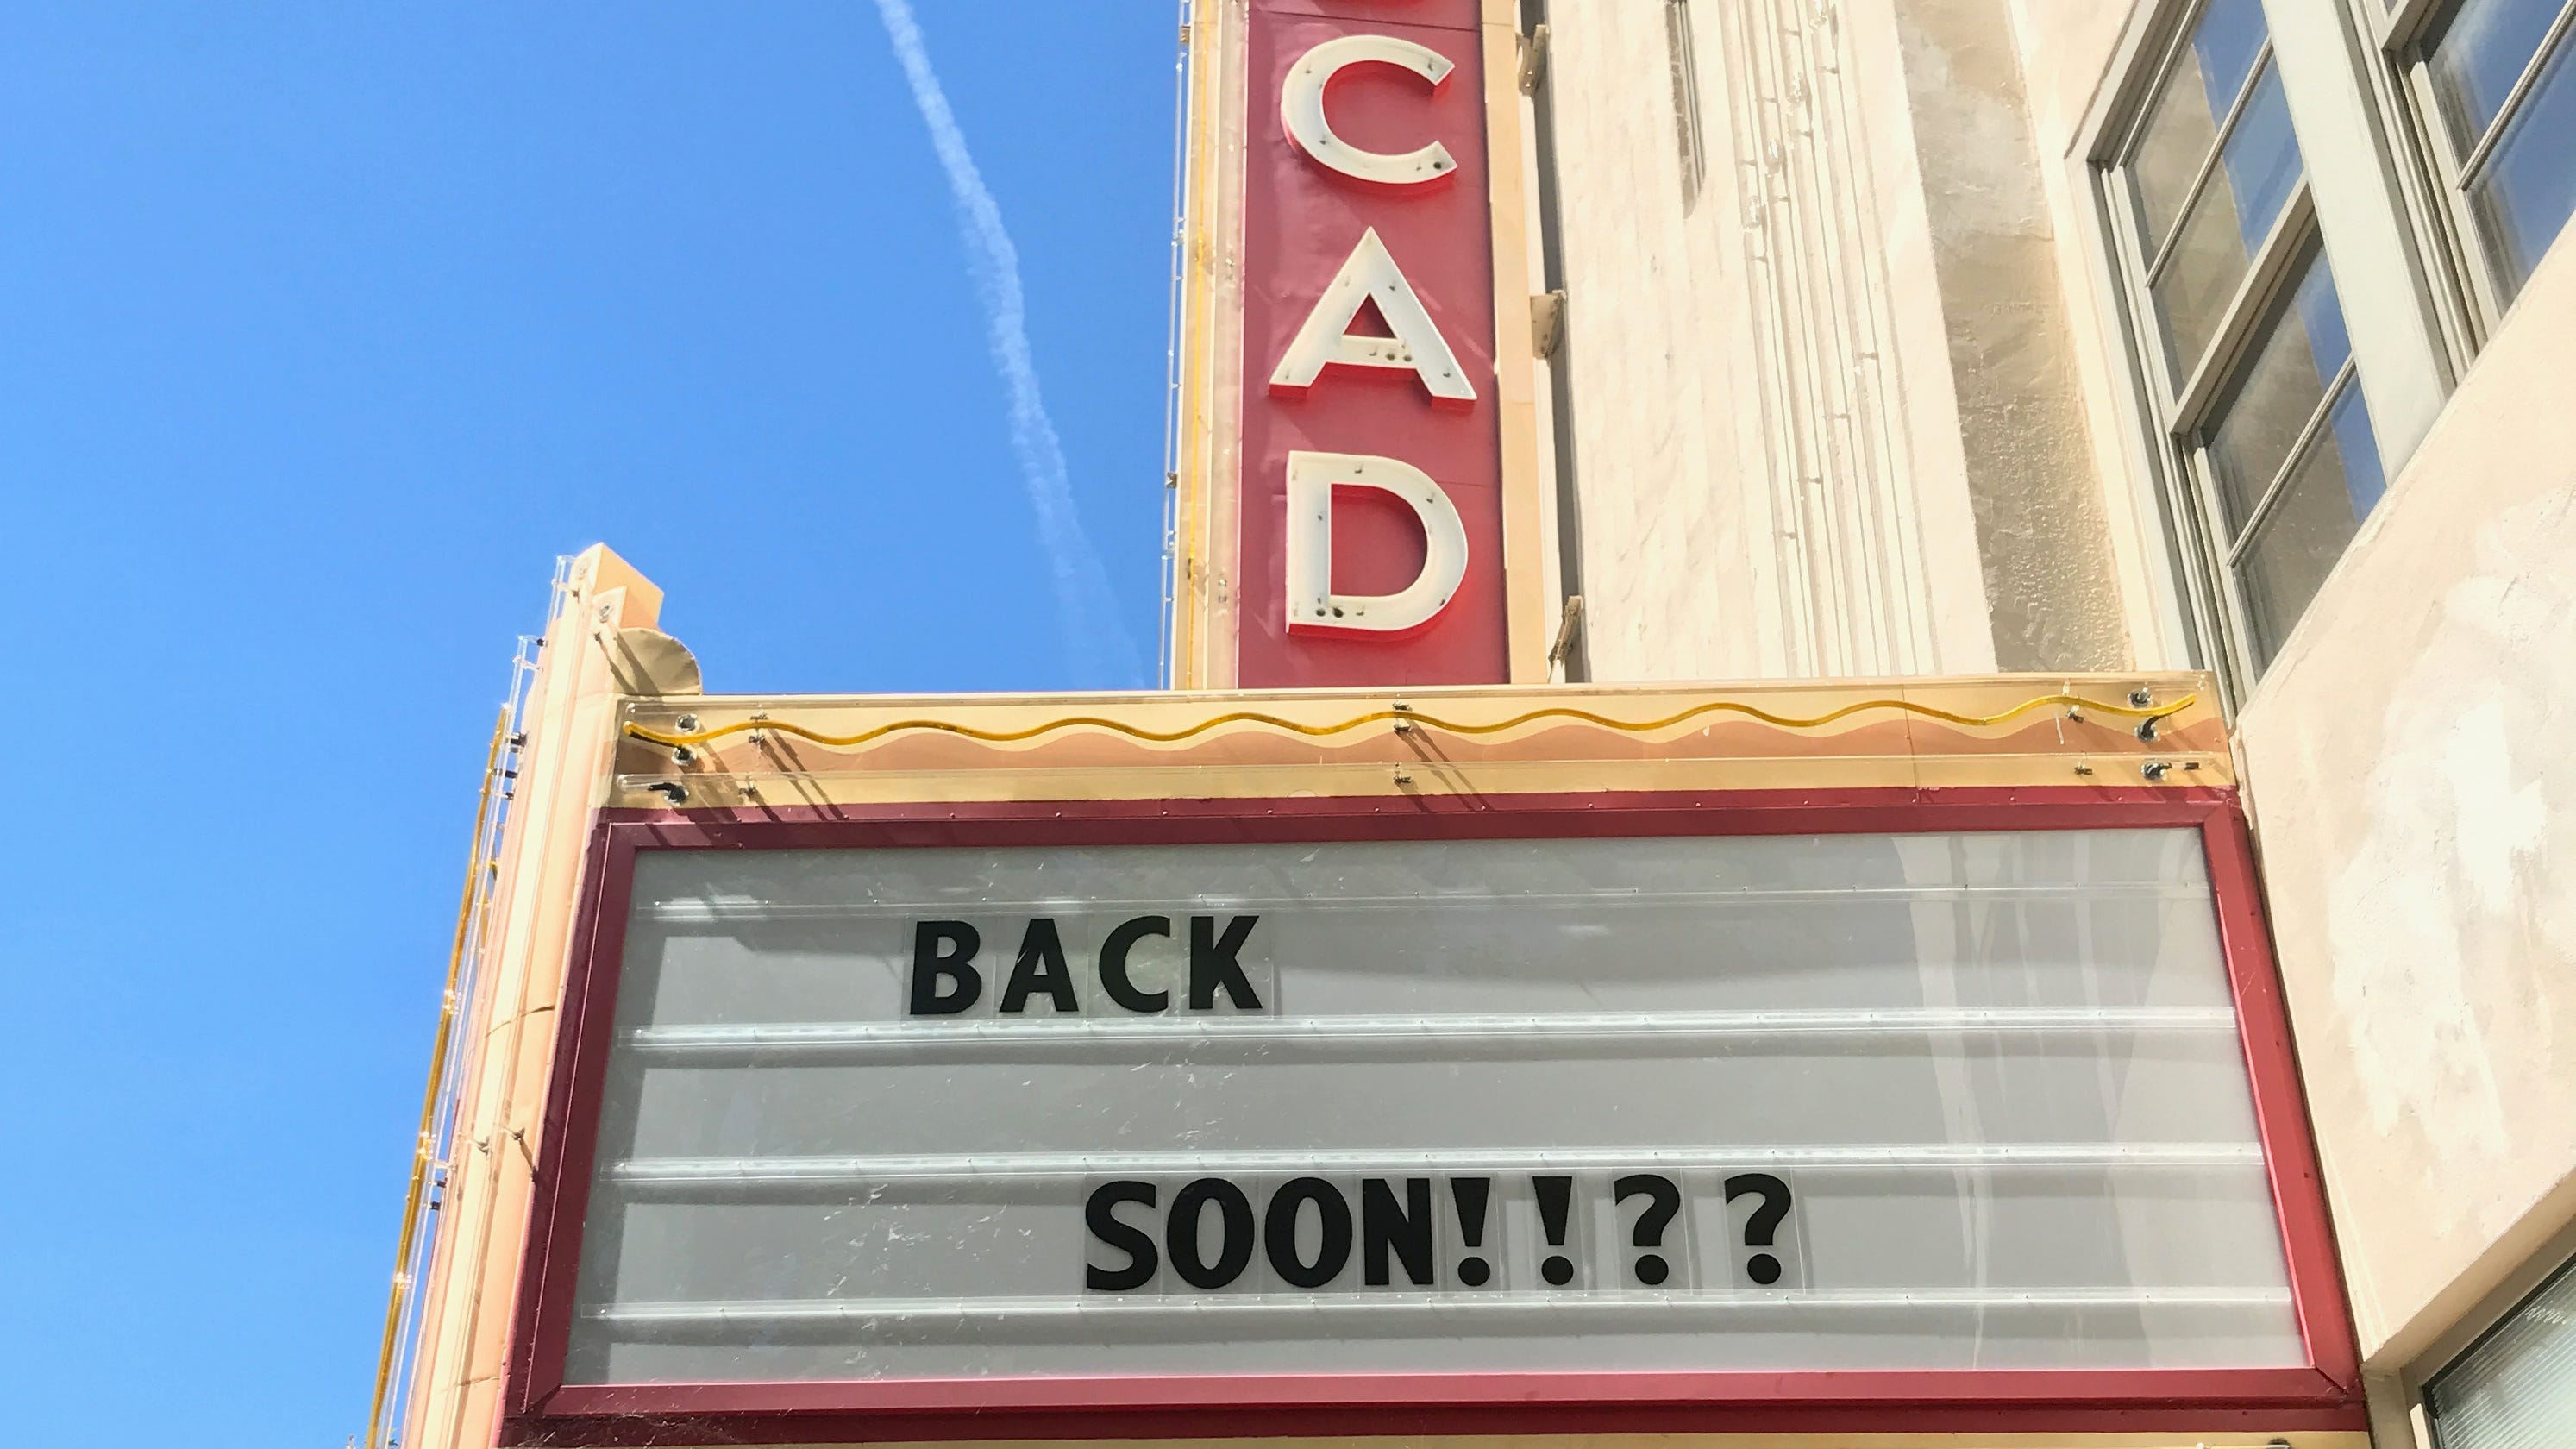 Cascade, Civic, other live venues wait for comeback from COVID-19: 'If there are spikes, the whole dynamic changes'